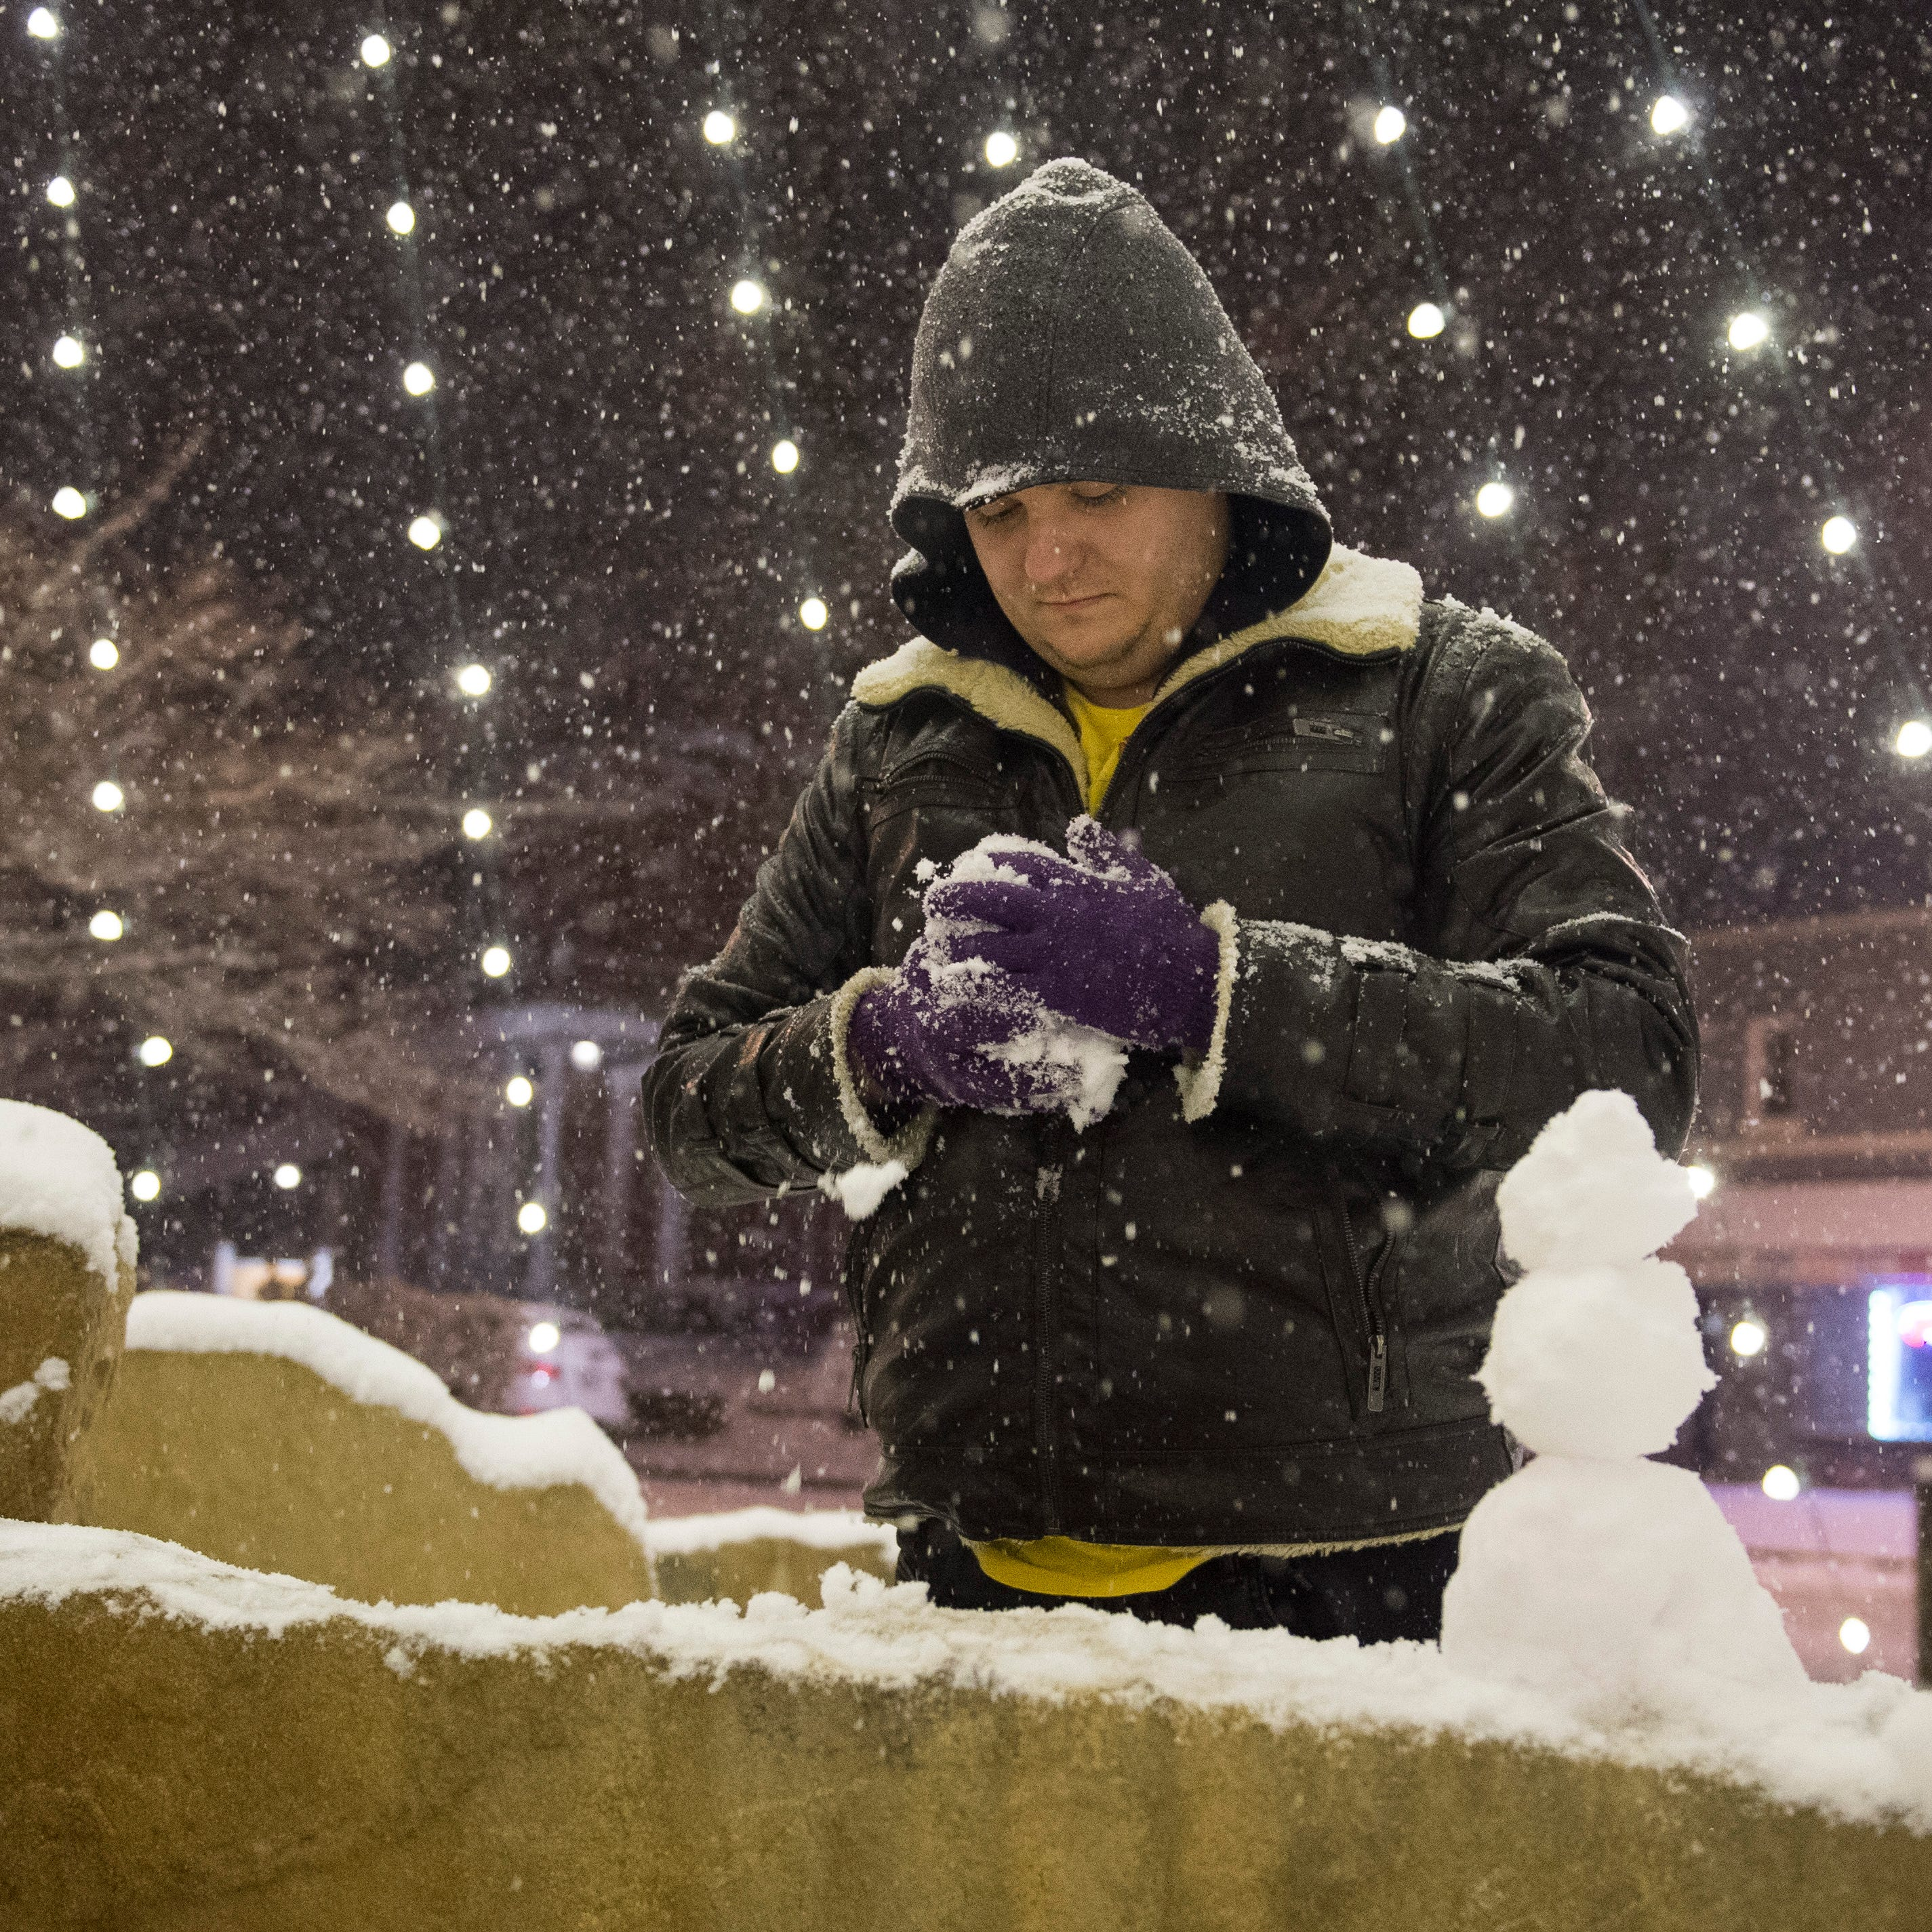 Live Updates: Winter Storm Gia brings snow to Evansville, Tri-State